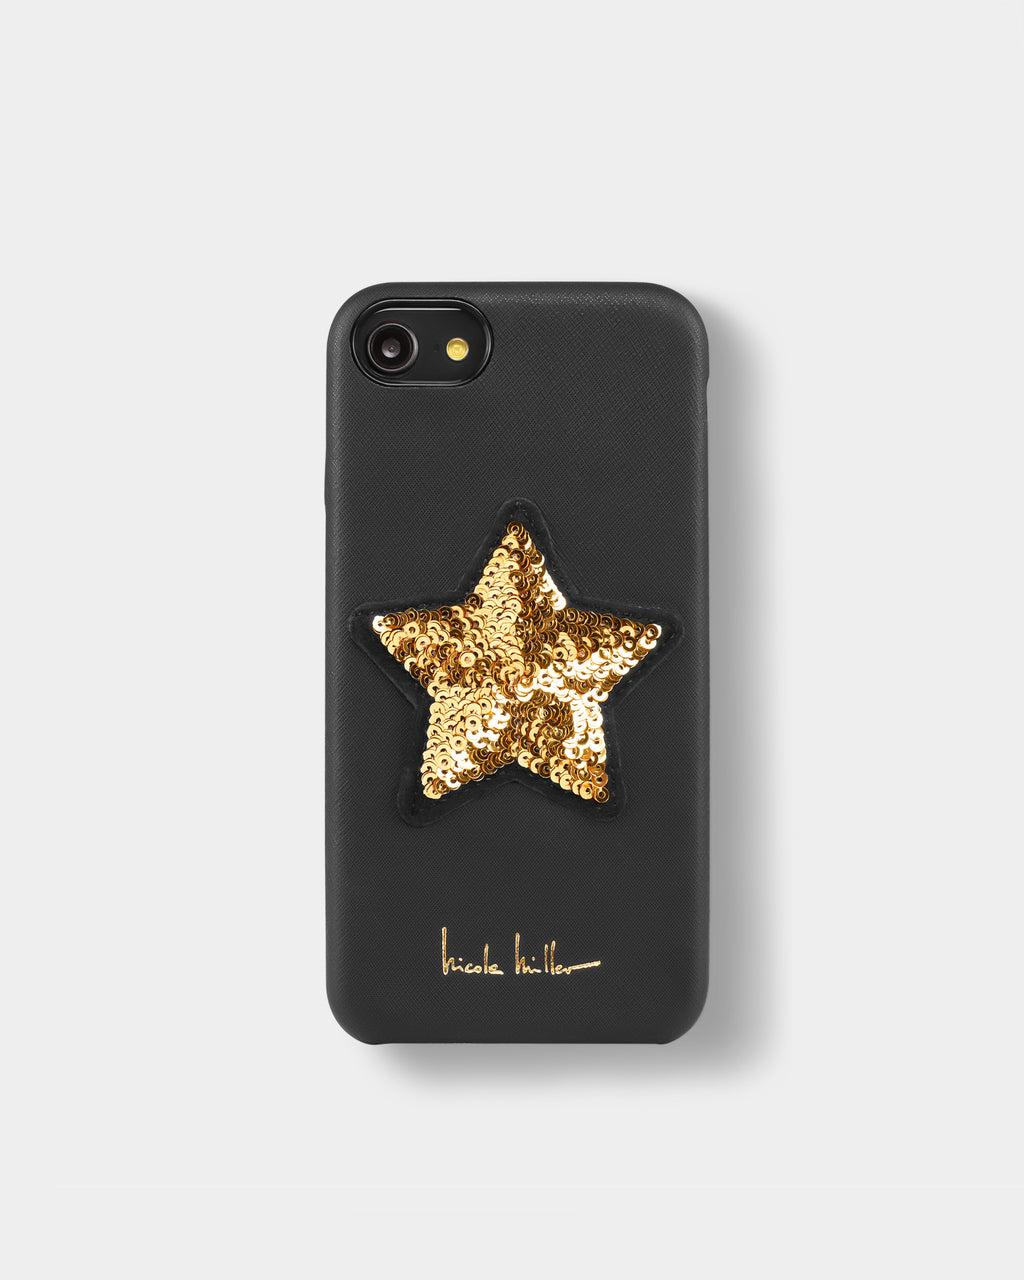 SSCGB01 - GOLD STAR SEQUIN IPHONE 6/6s/7/8 case - accessories - fashion tech - THIS SEQUIN STAR IPHONE CASE FEATURES A HARDSHELL.